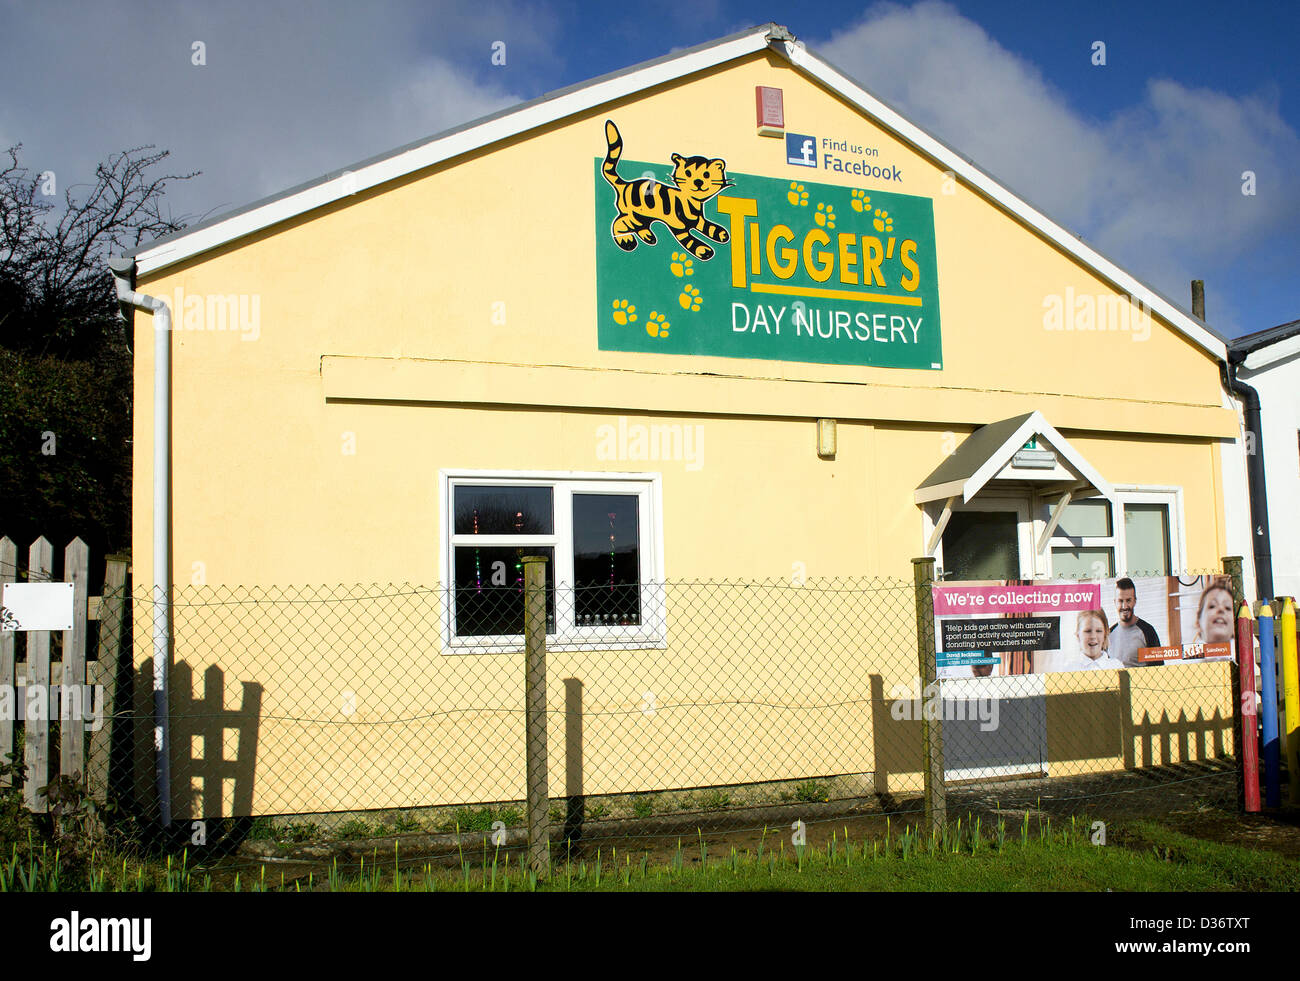 a childrens day nursery in uk - Stock Image